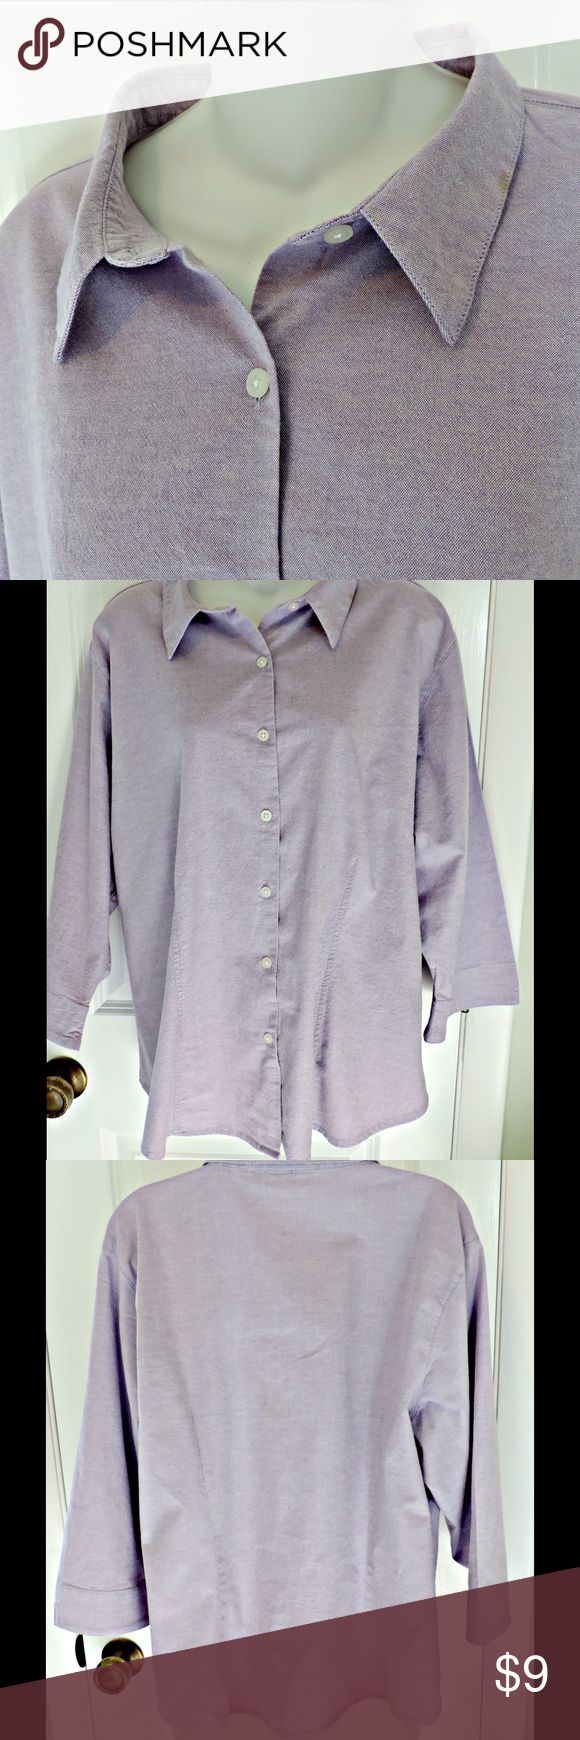 Women's Plus Size 2X Oxford Cloth Tailored Shirt Purple Bay Studio 2X Shirt.  This is an Oxford shirt with white shirt buttons.  It is 91% cotton and 3% spandex.  There are gentle vertical darts front and back.  Very flattering! Bay Studio Plus Tops Button Down Shirts